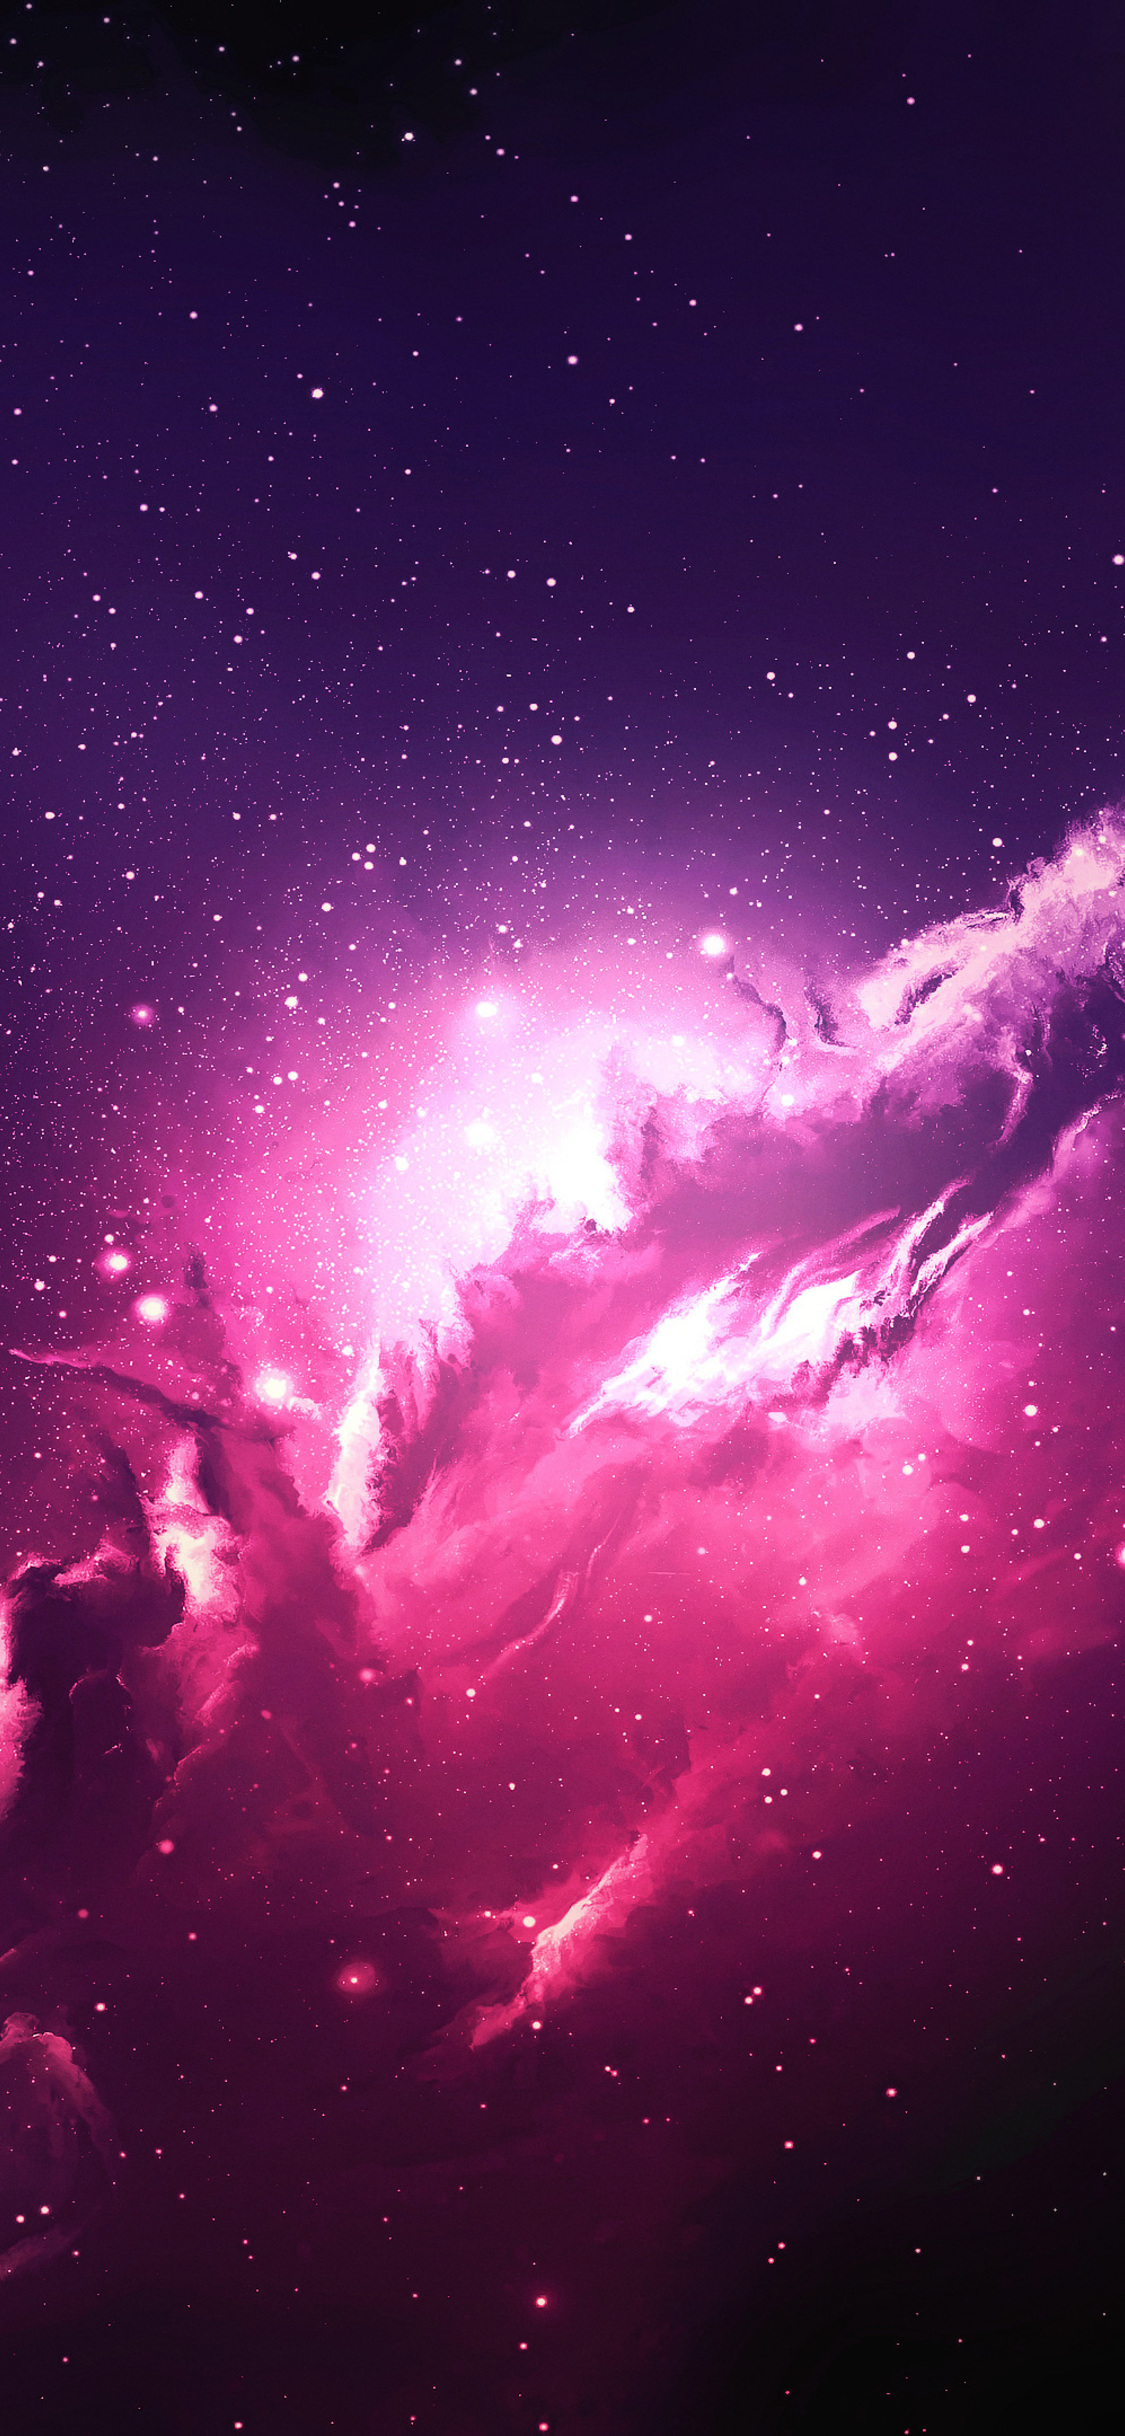 Galaxy Wallpaper 4k Iphone, Hd Wallpapers and backgrounds